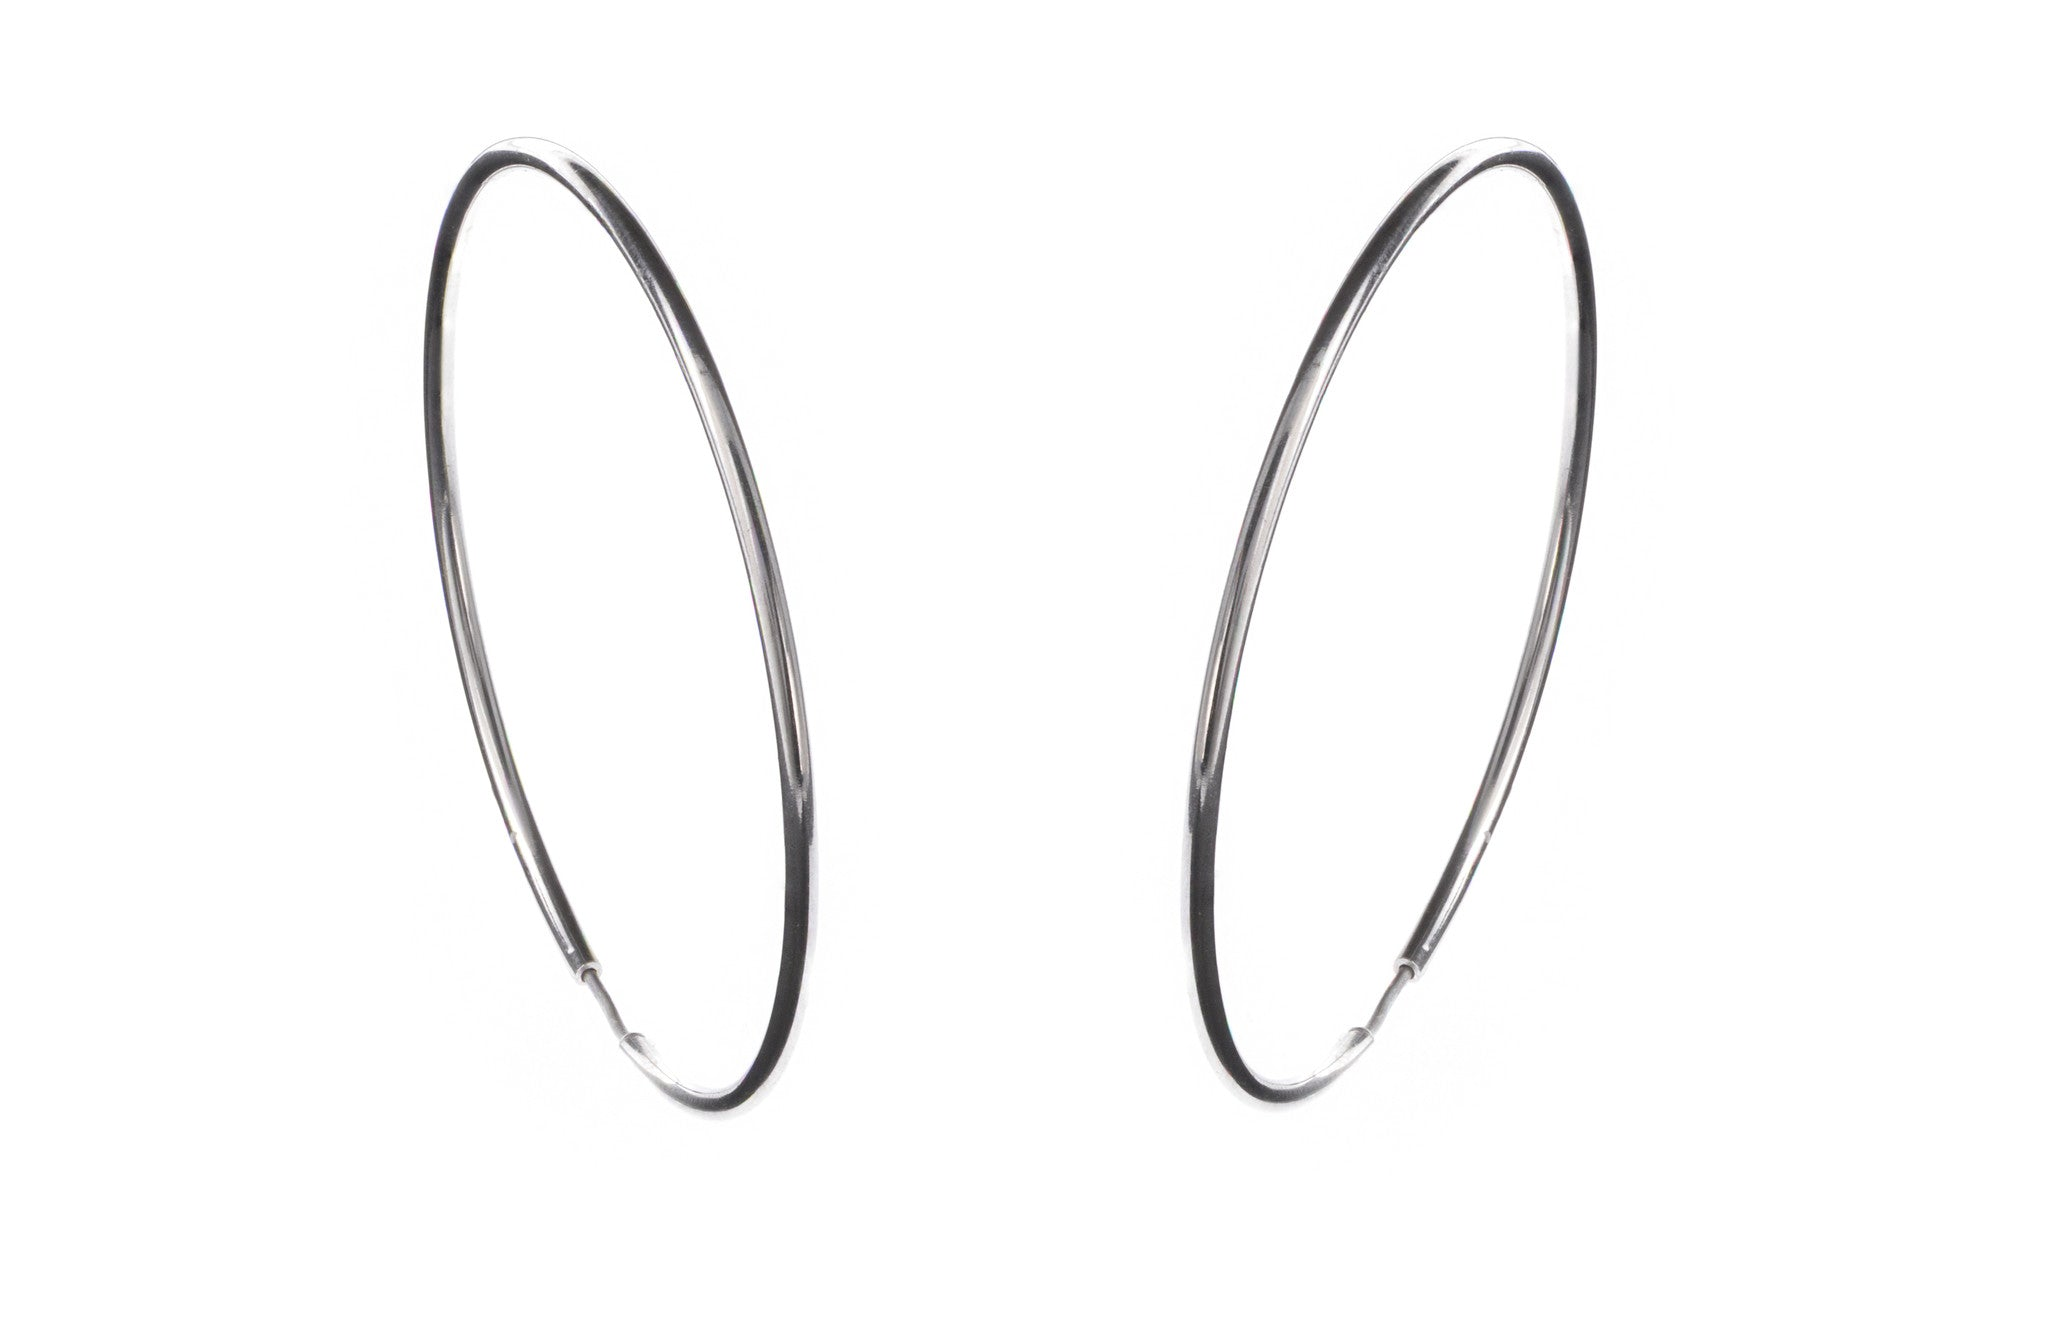 18ct White Gold Hoop Earrings, Minar Jewellers - 4